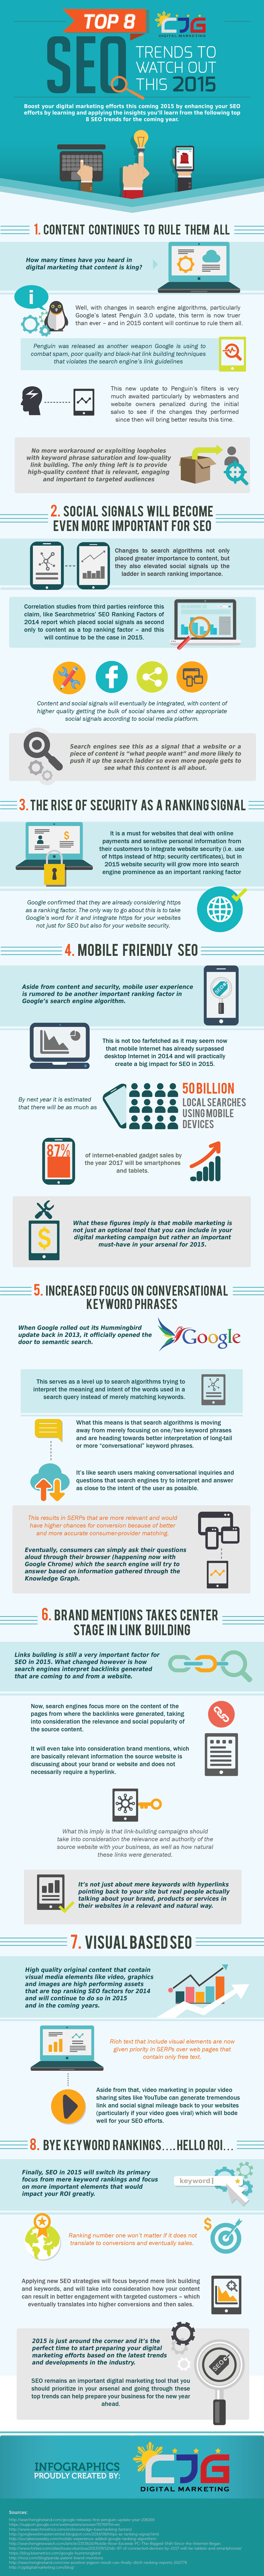 Top 8 SEO Trends to Watch Out this 2015 [Infographic] image Top 8 SEO Trends to Watch Out this 2015